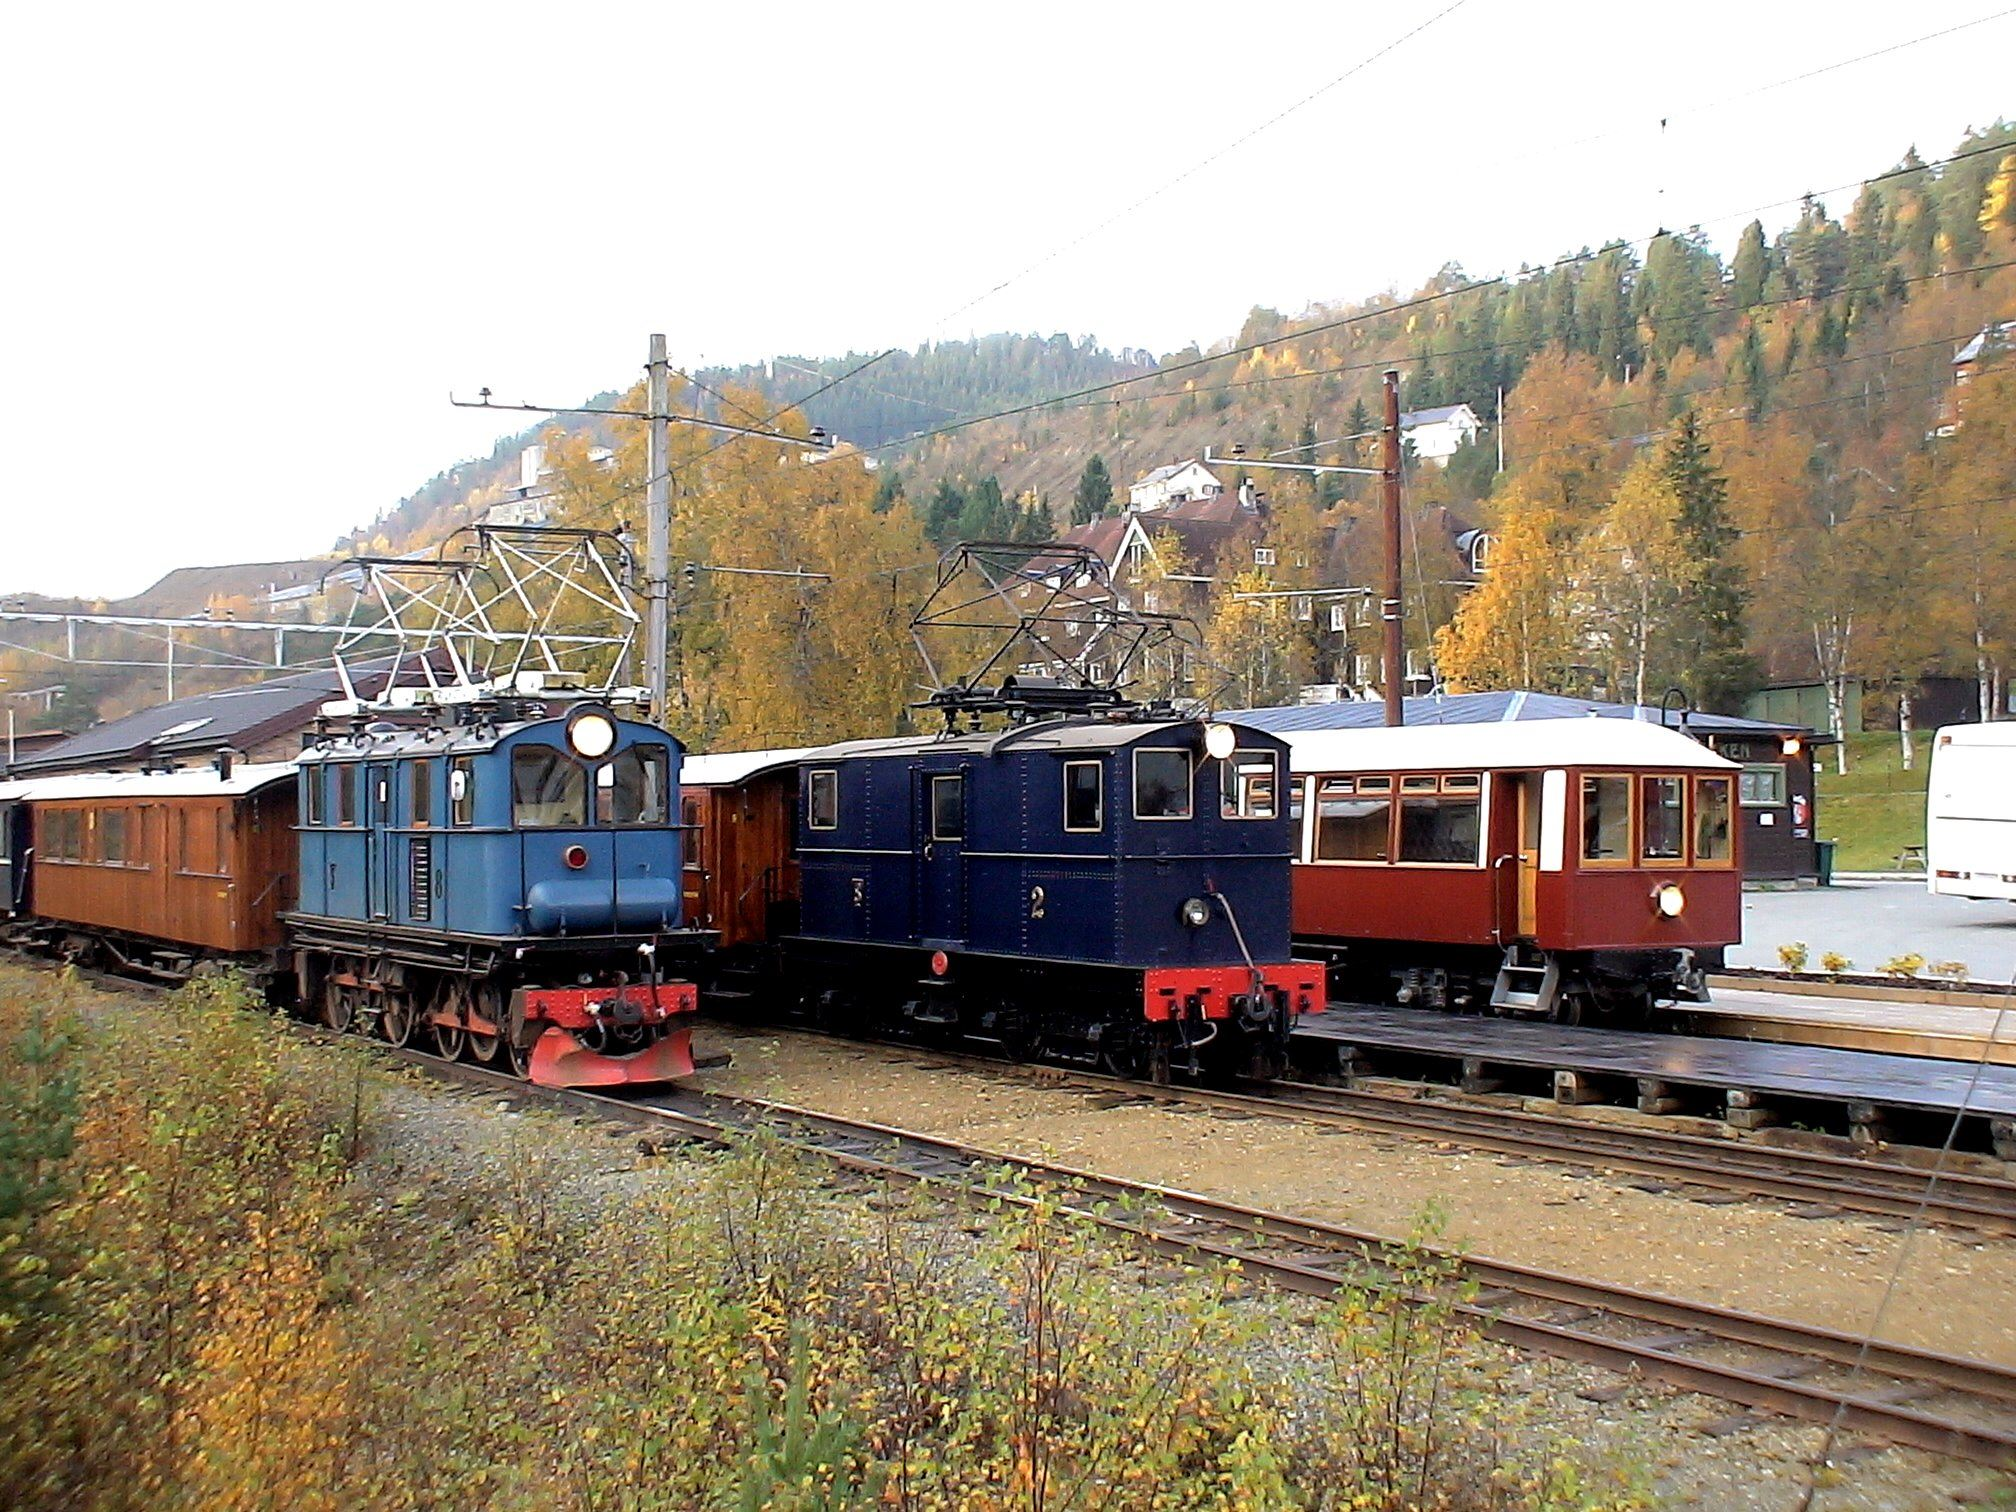 The Thamshavn Railway